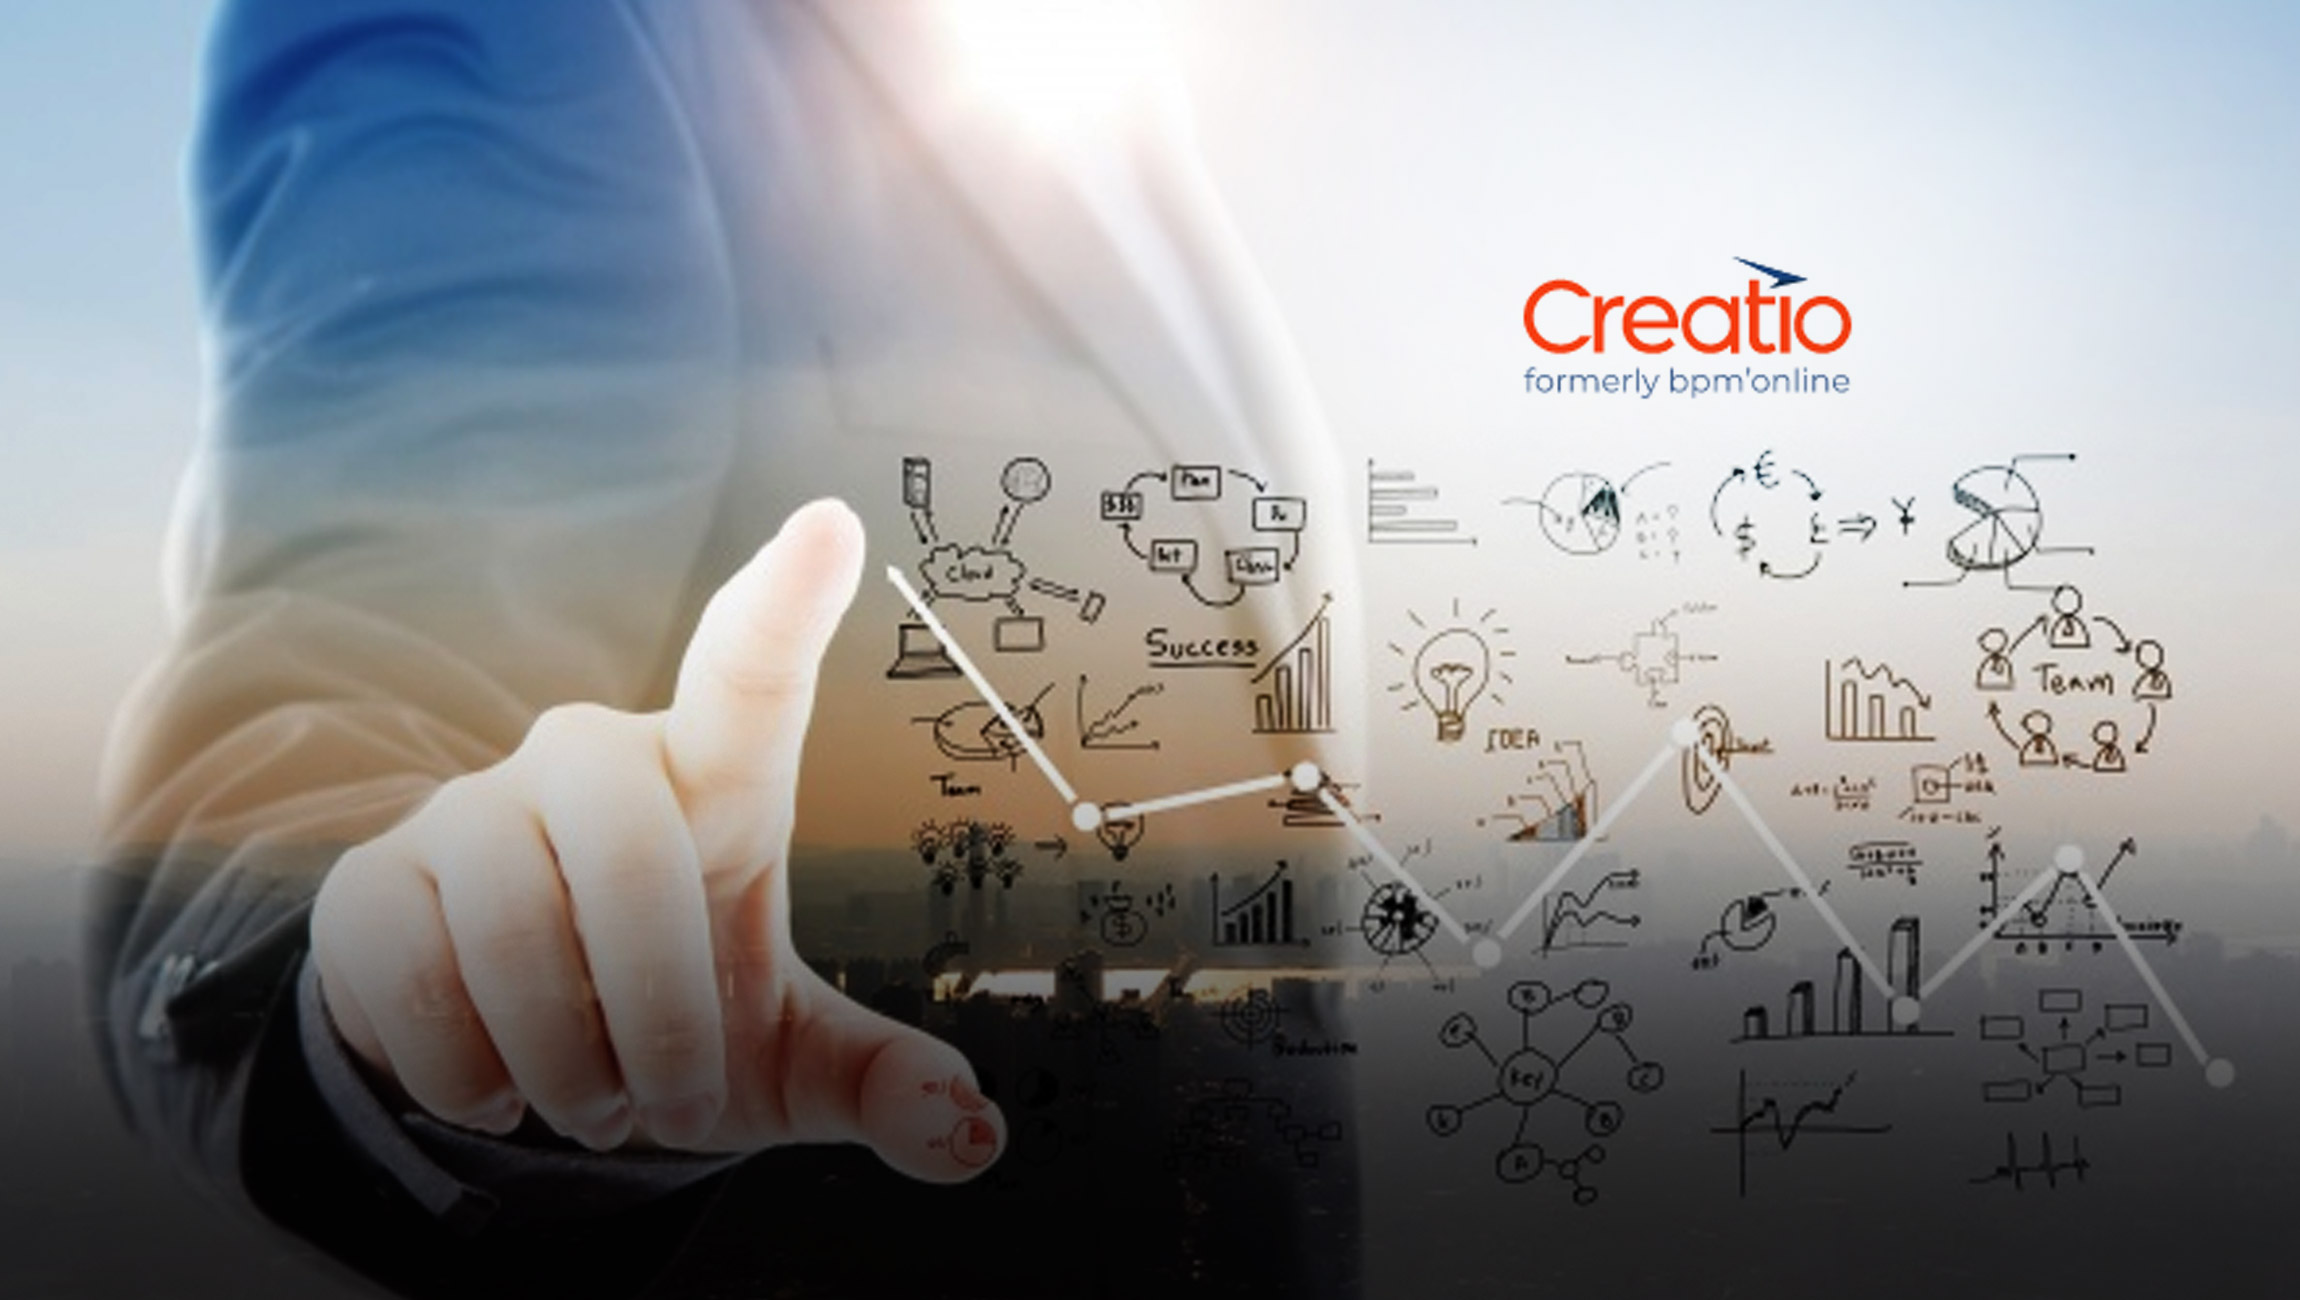 Creatio Named Market Leader among Low-Code Development Platforms according to the Summer 2020 Customer Success Report